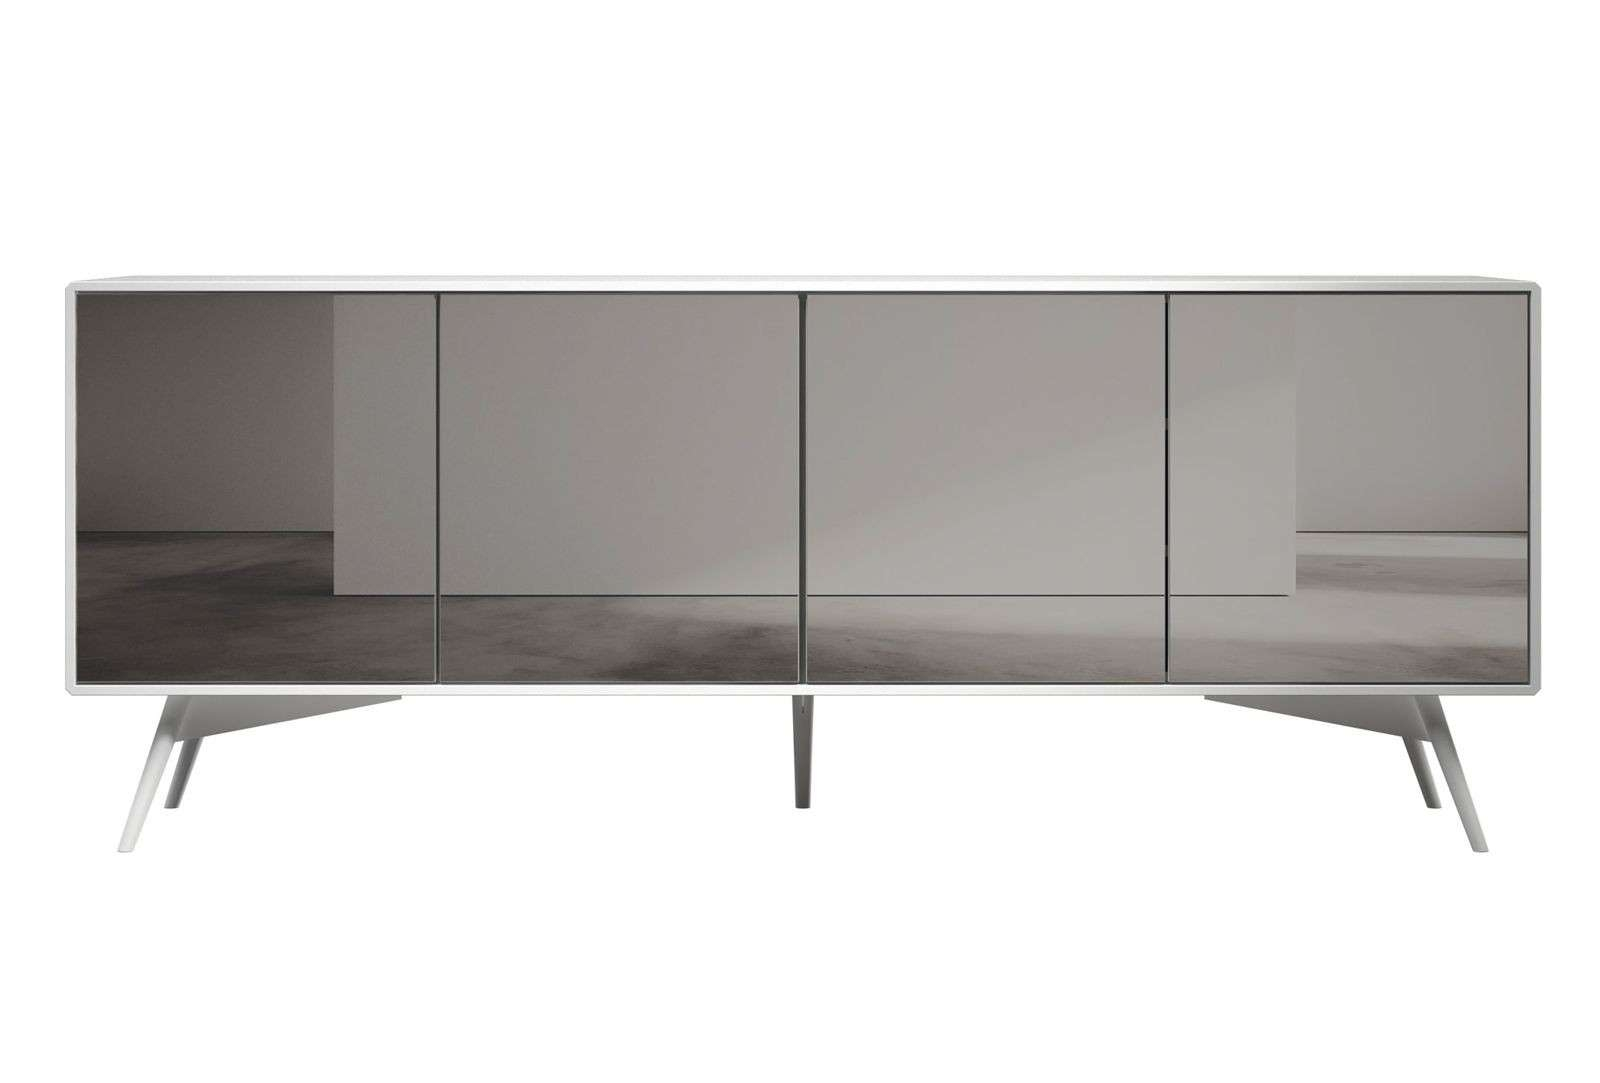 Christopher Sideboardmodloft | Modern Sideboards | Cressina With Regard To White Modern Sideboards (View 14 of 20)